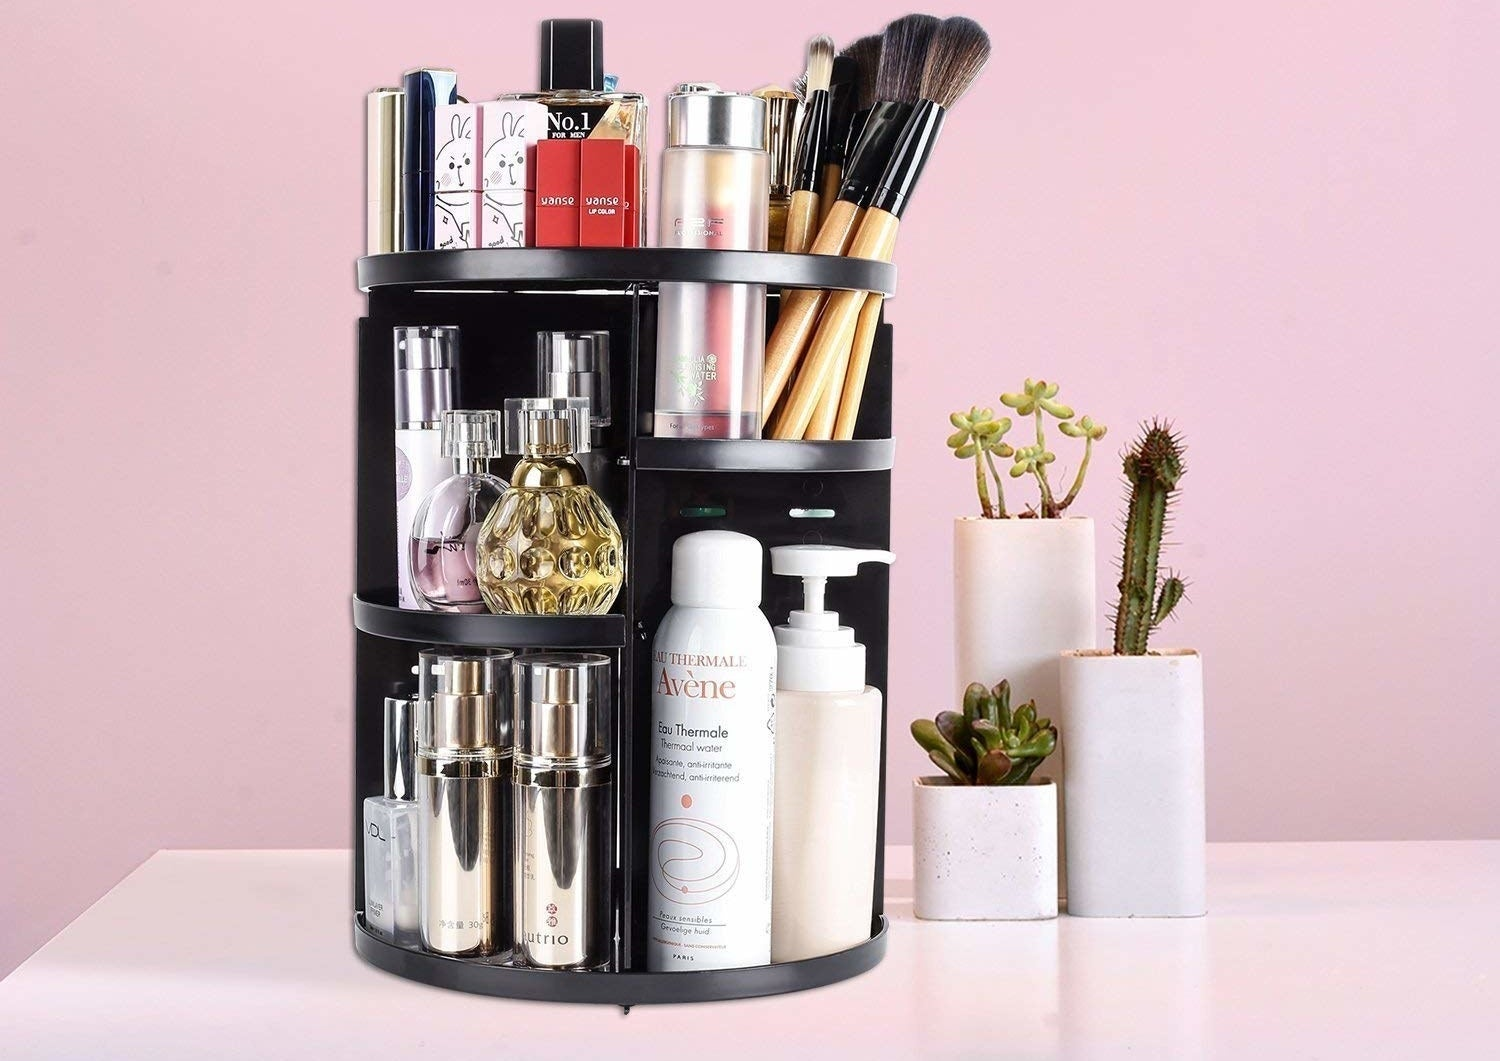 A multi-tiered shelf filled with beauty products